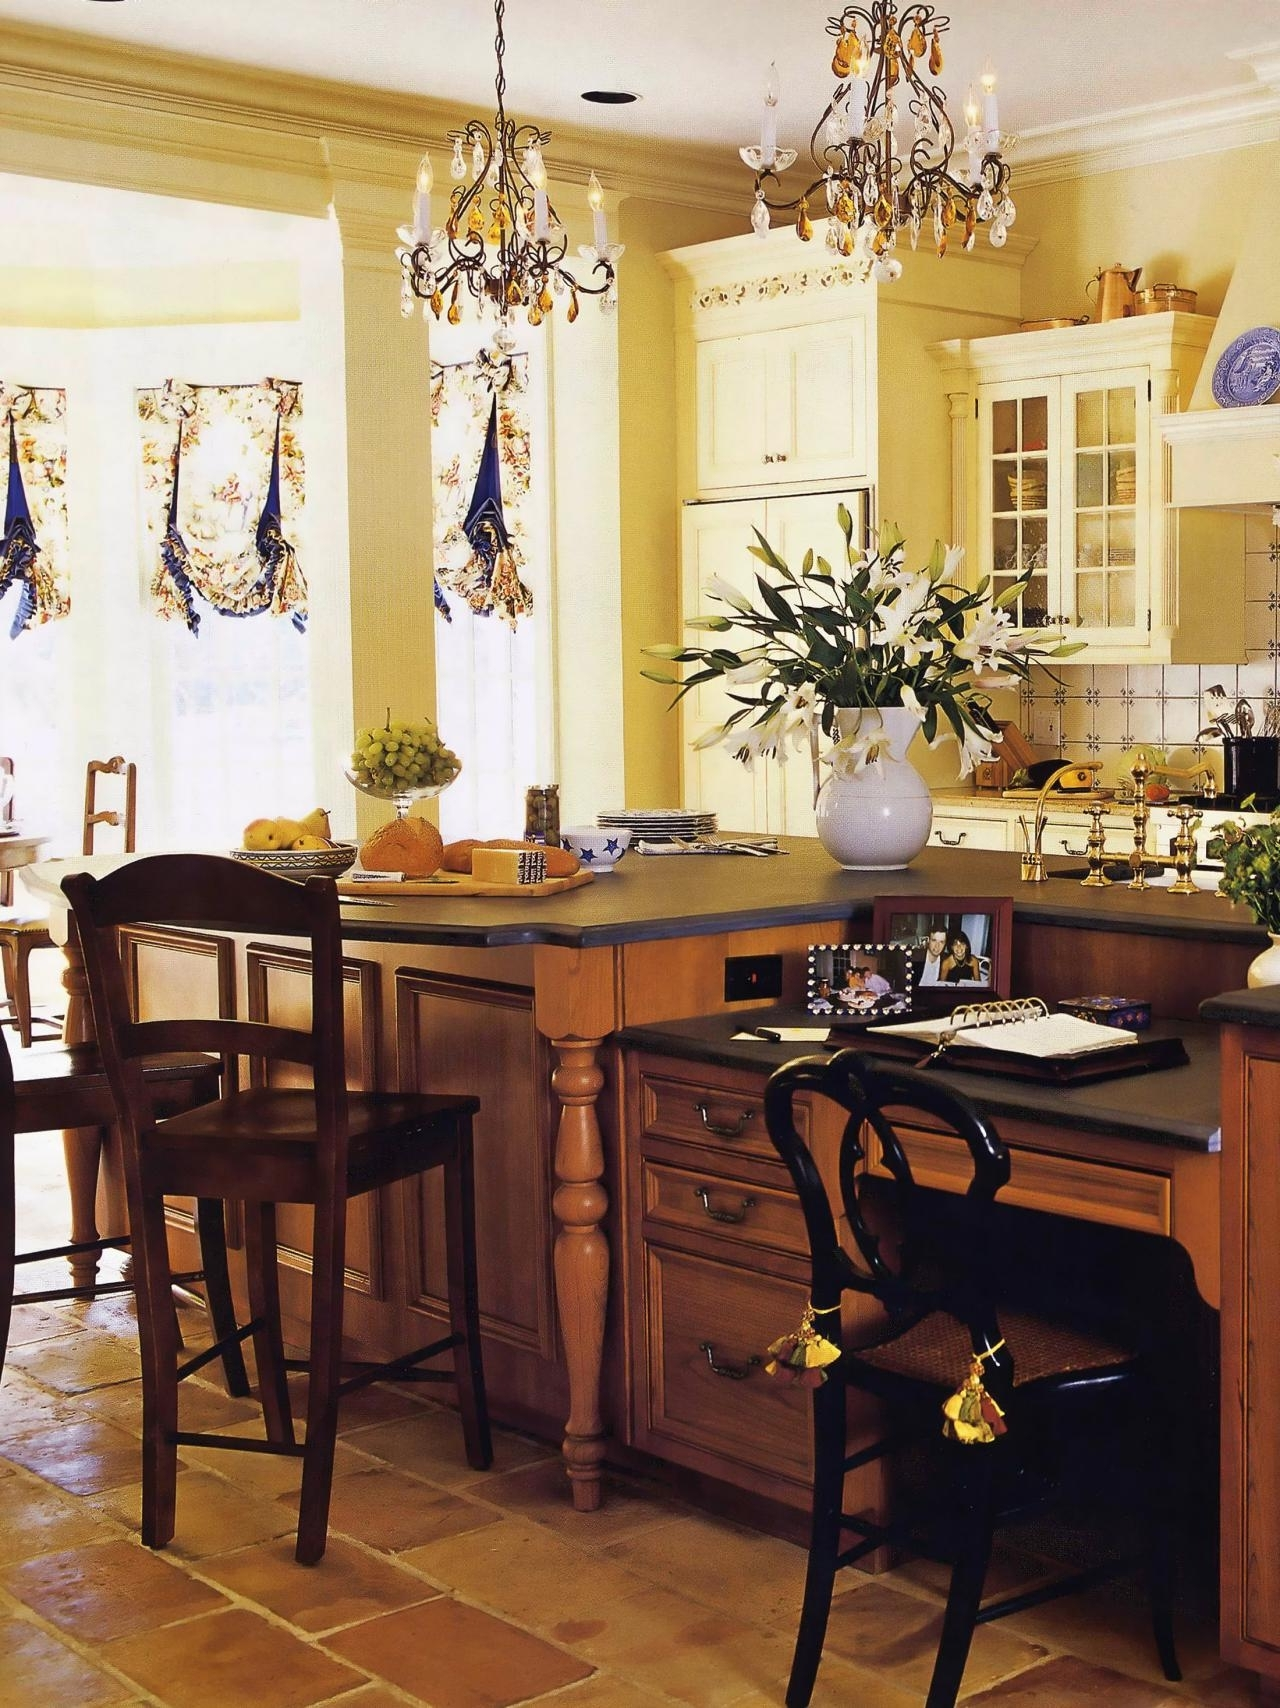 Recent Kitchen : Drum Pendant Chandelier Customize Kitchen Lighting With Pertaining To Small Rustic Kitchen Chandeliers (View 16 of 20)